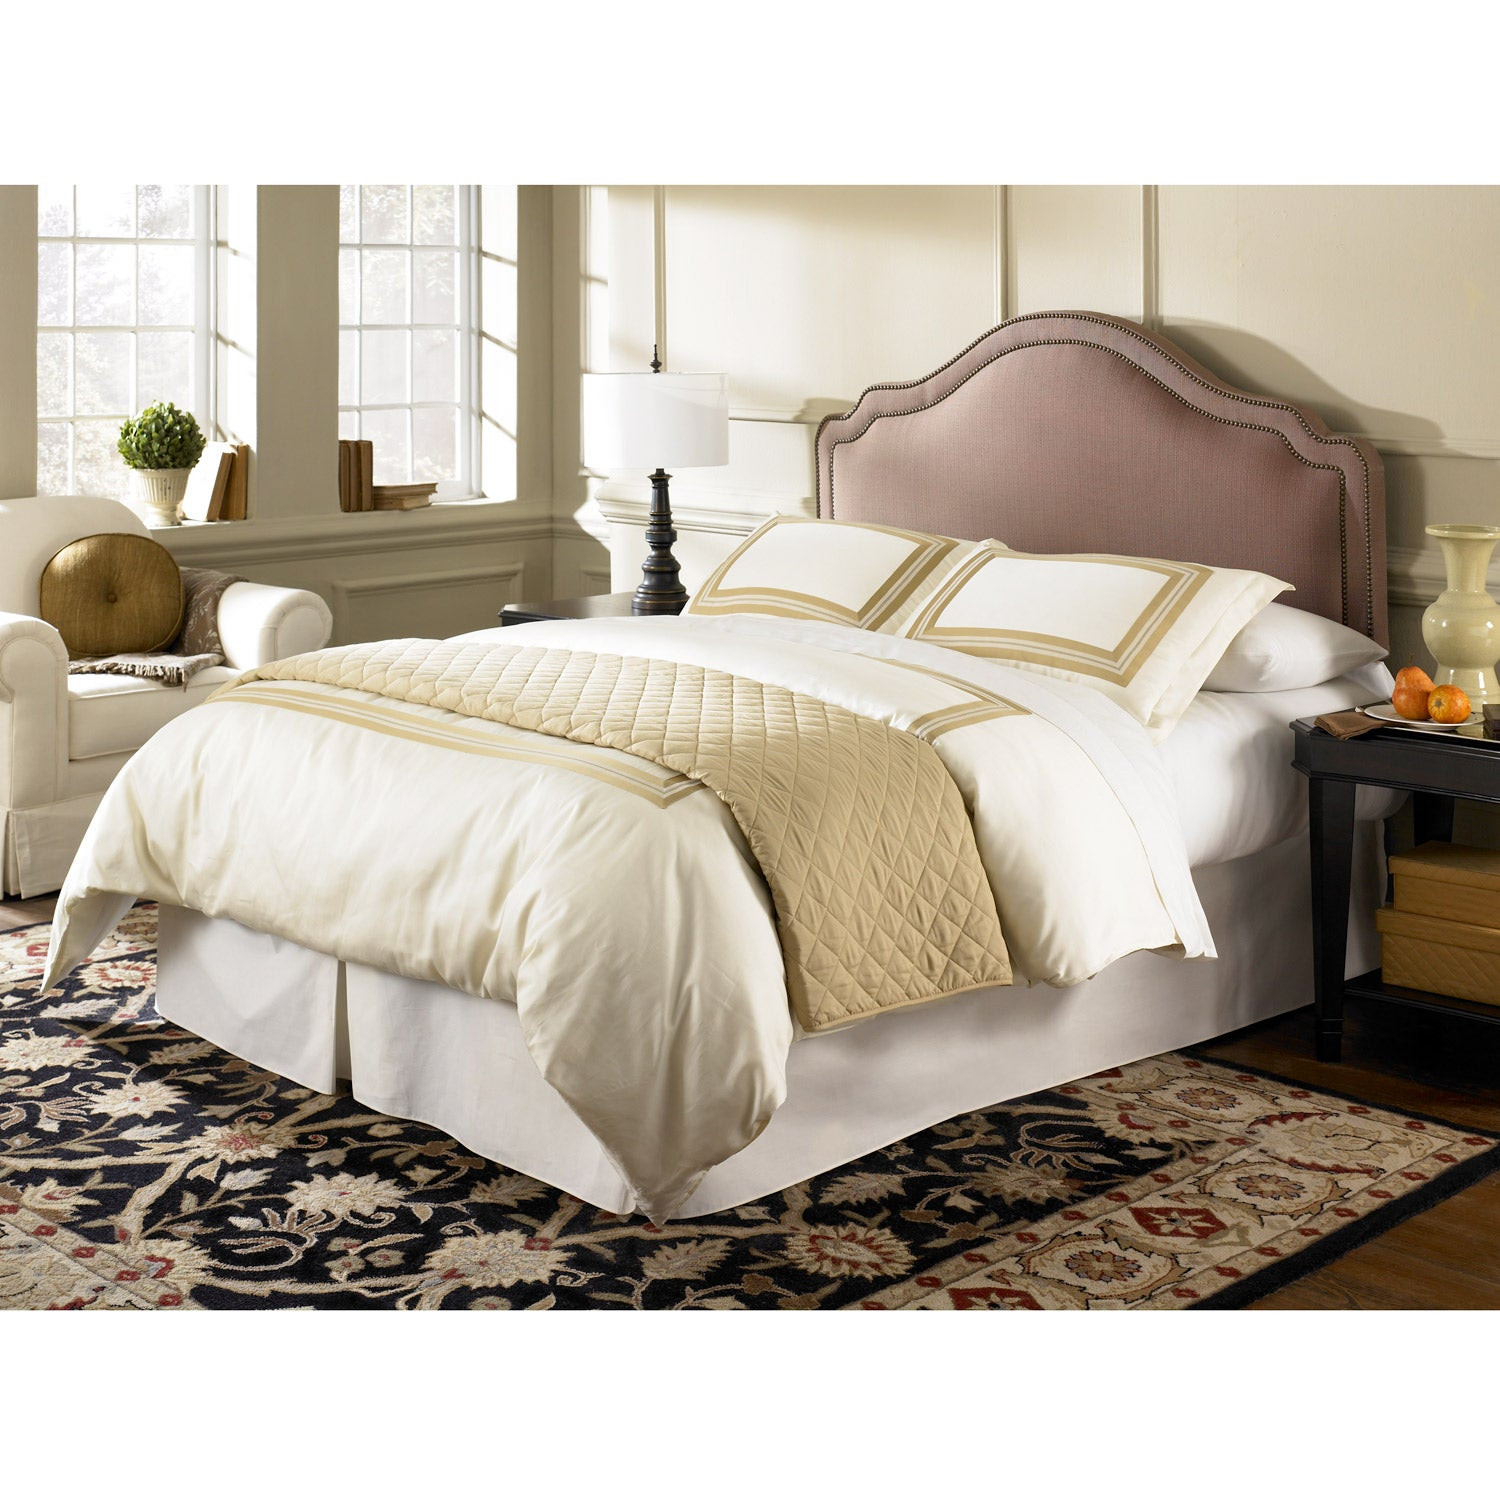 Fashion Bed Versailles Brown Sugar Twin Upholstered Headboard